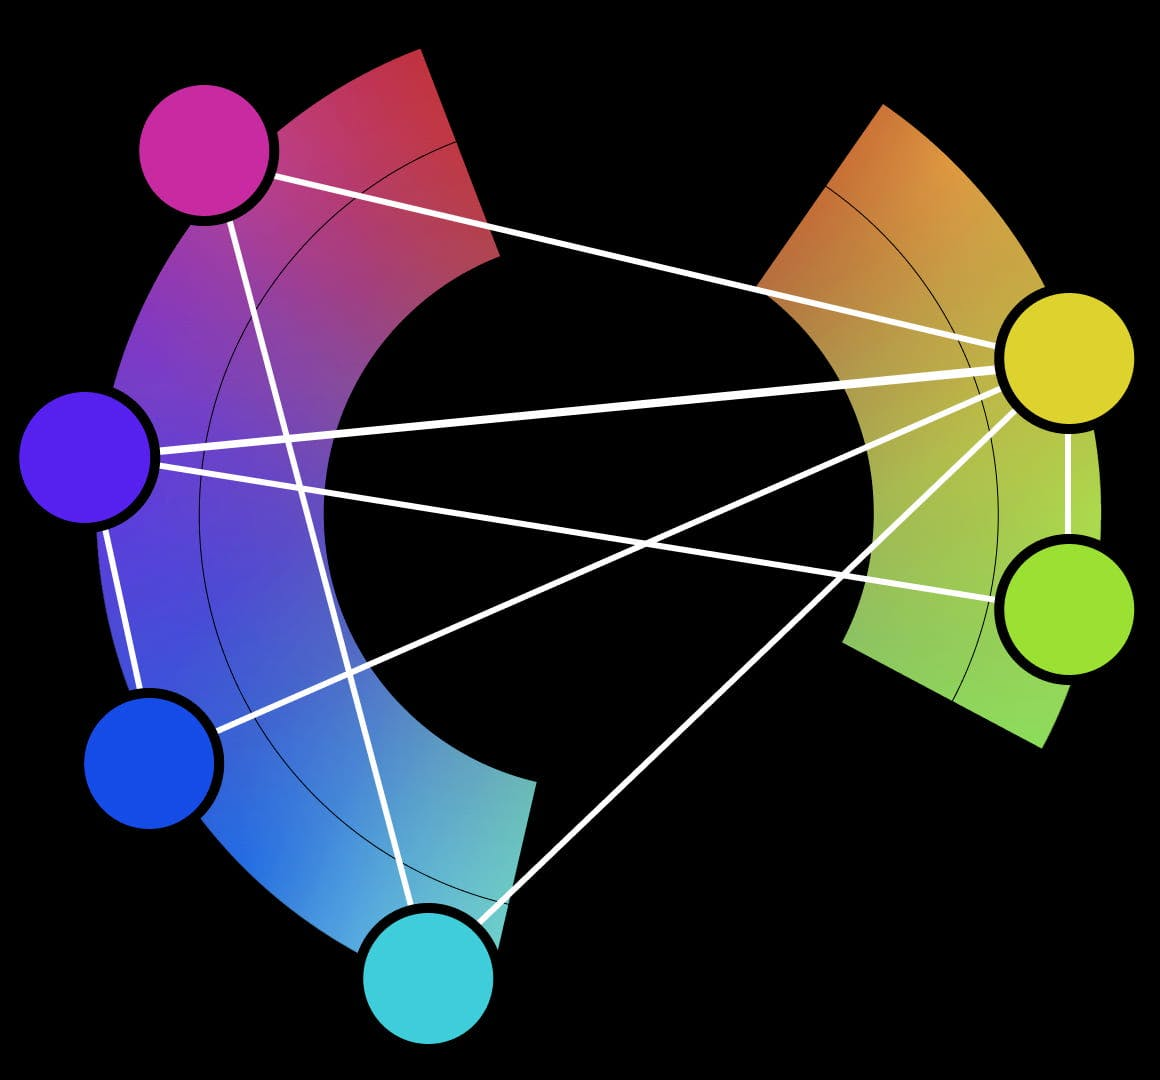 Colour wheel with harmonies mapped across teh highlighted colours.